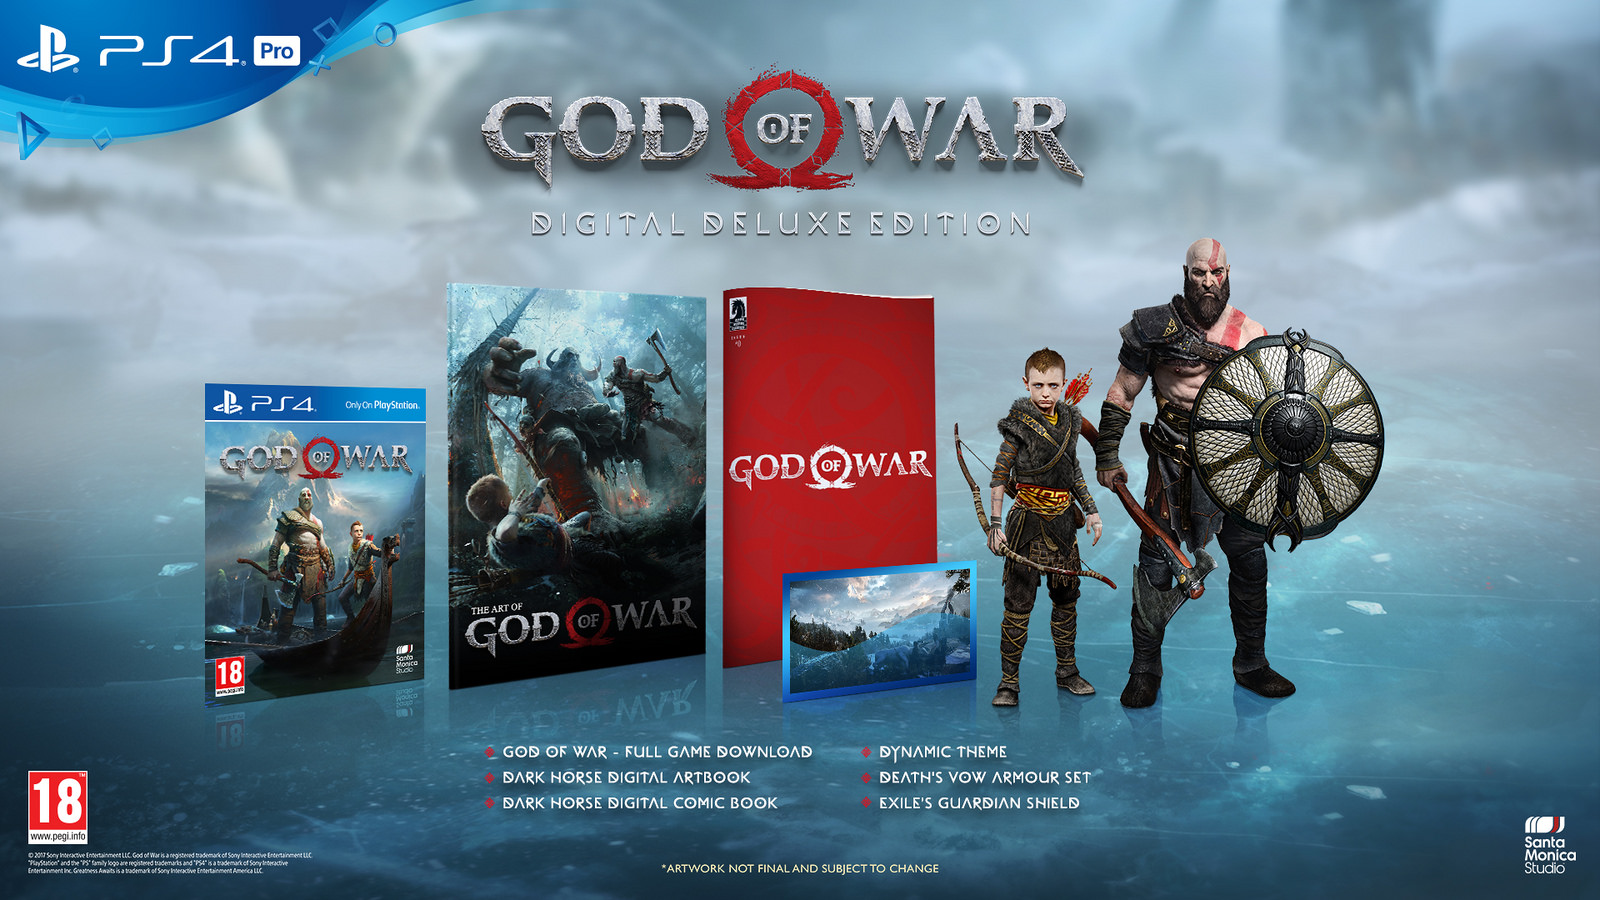 God of War will be released in April